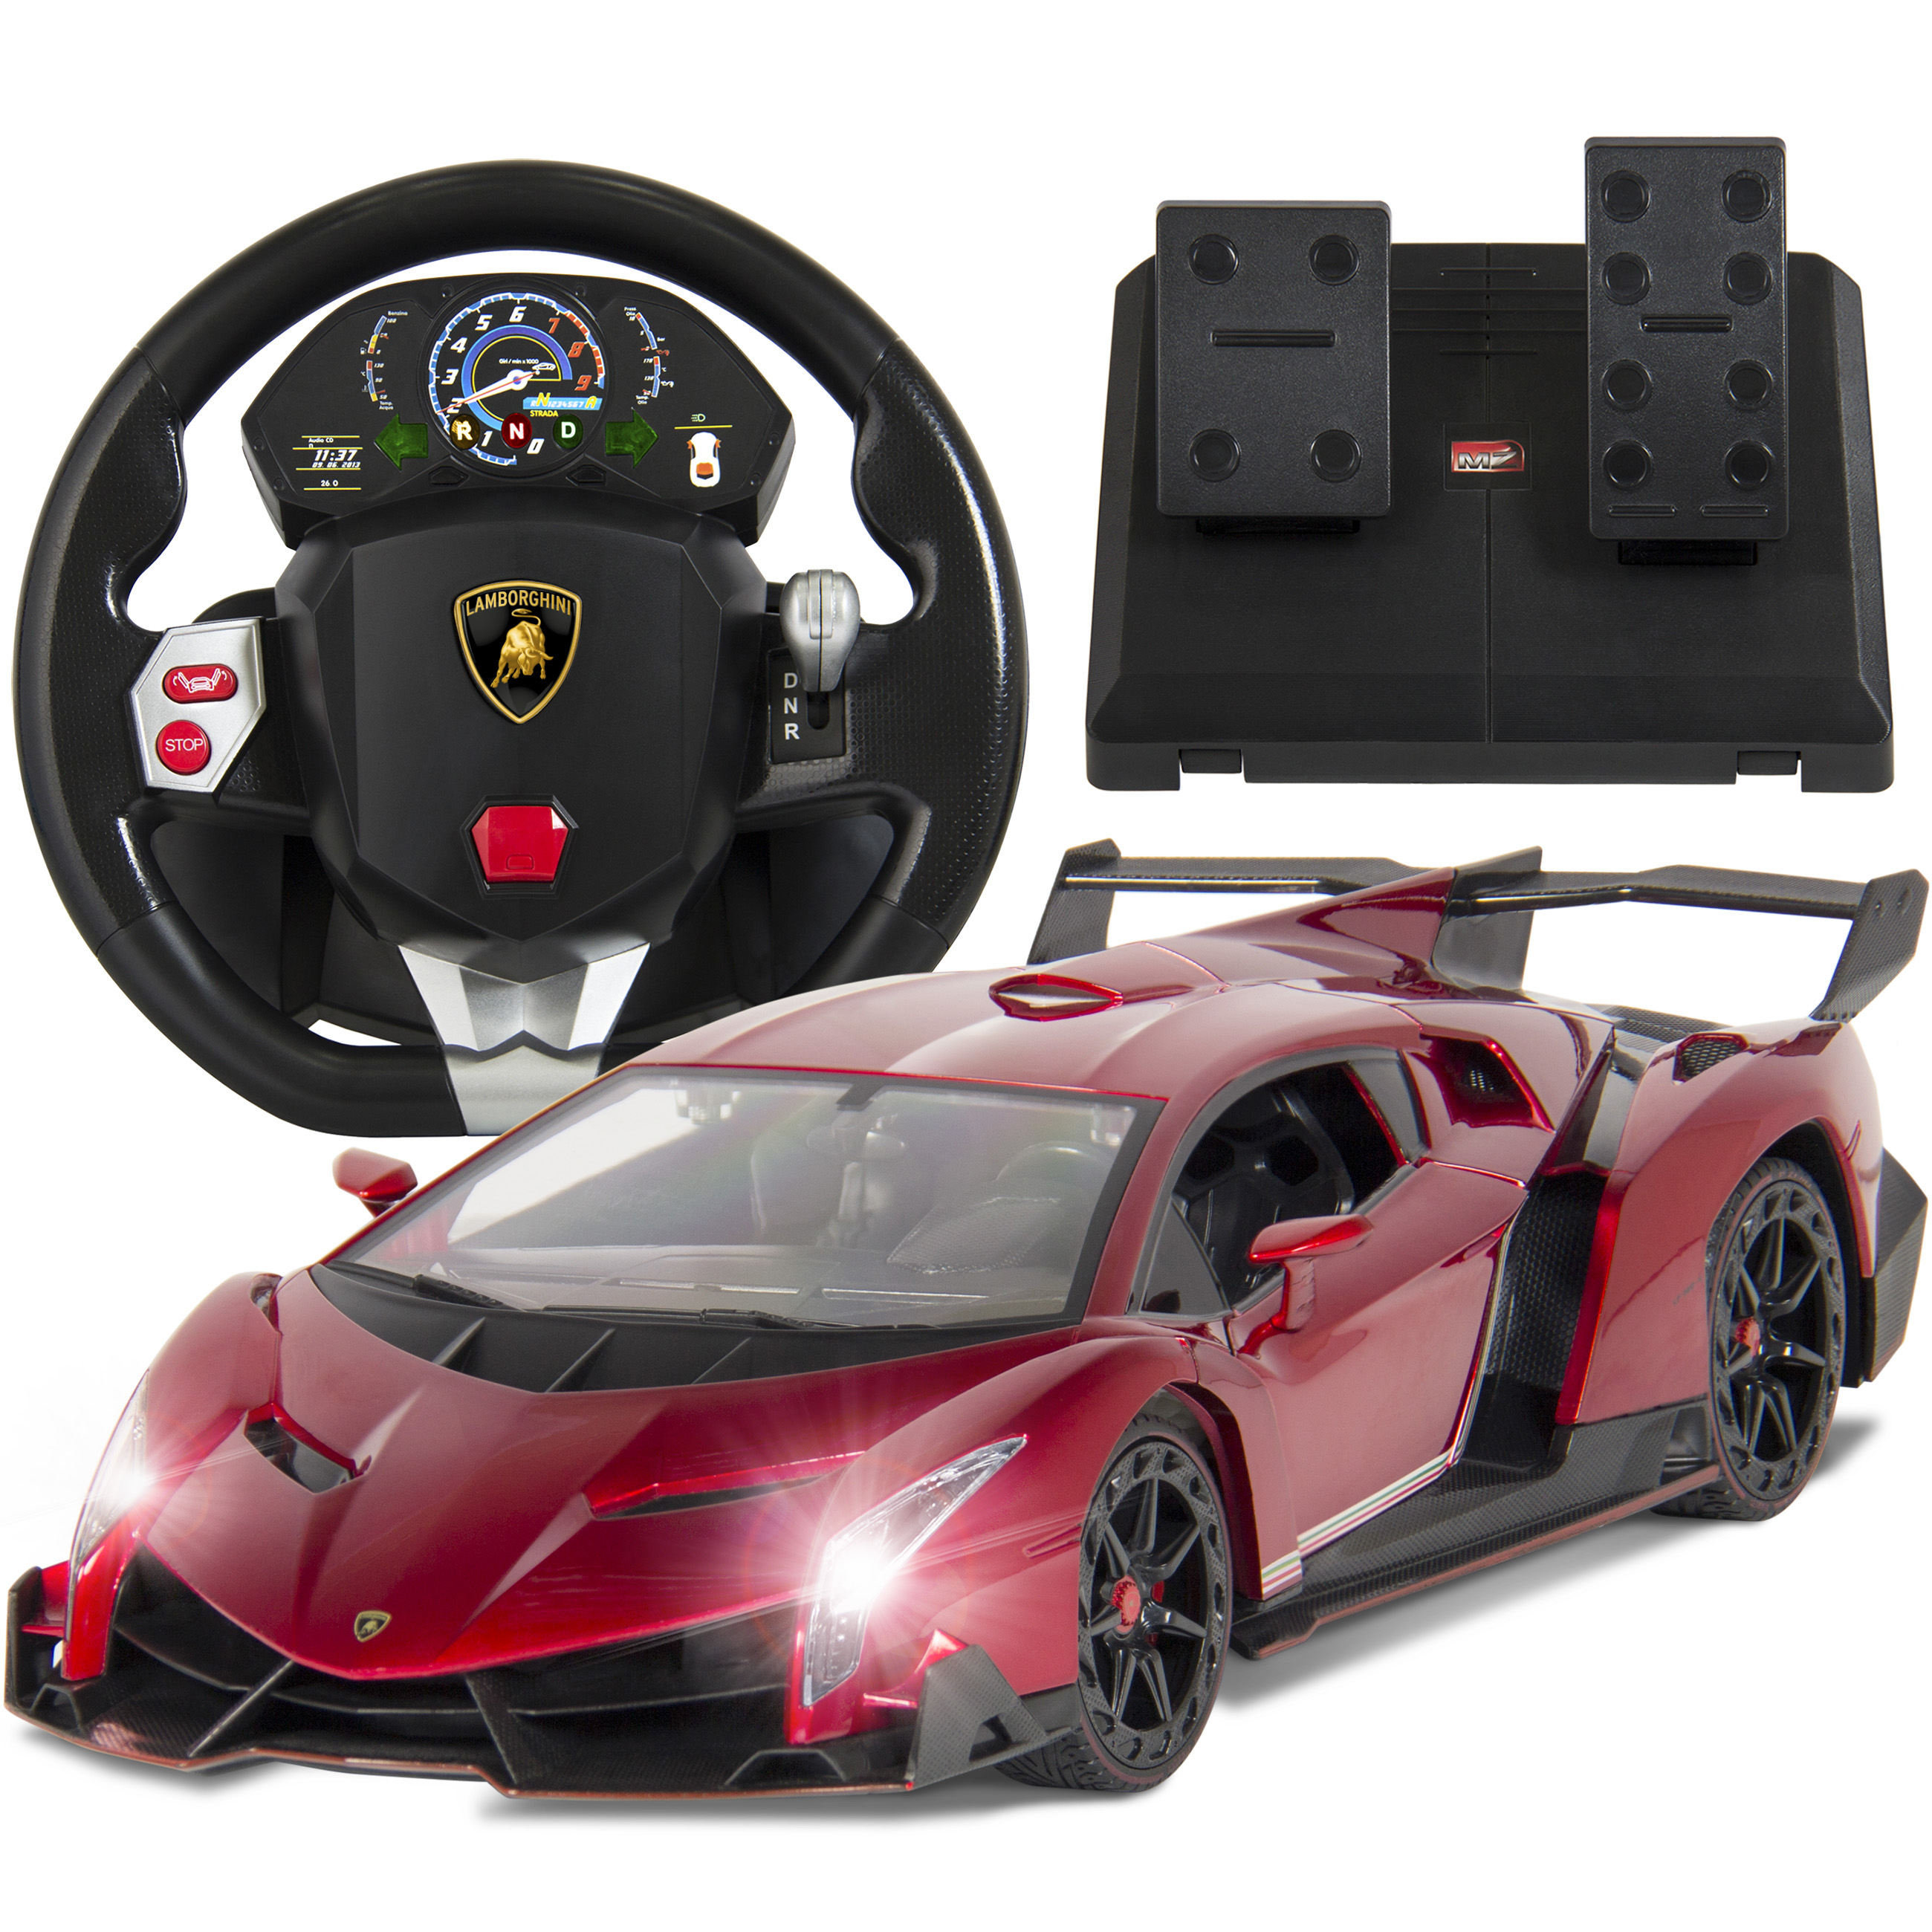 Best Choice Products 1/14 Scale RC Lamborghini Veneno Realistic Driving Gravity Sensor Remote Control Car Red